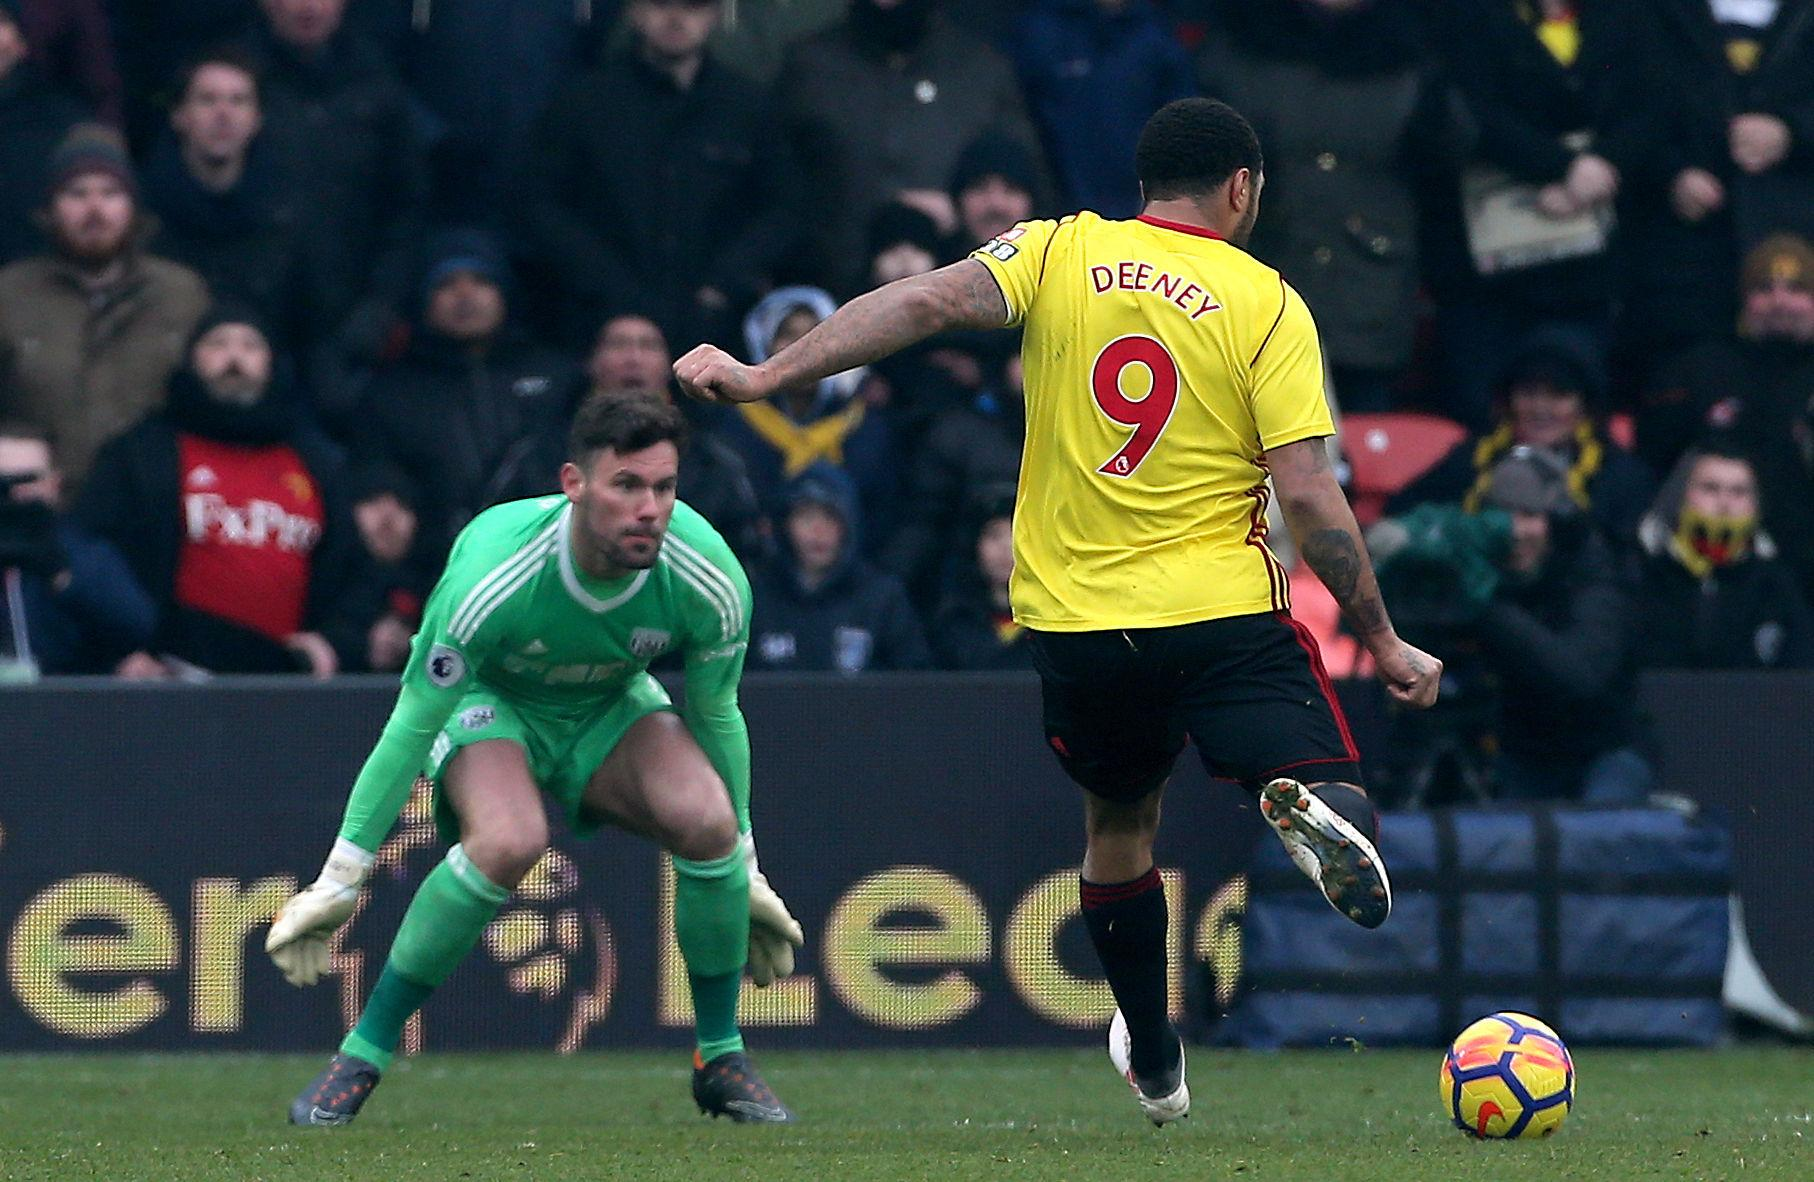 Moments before Deeney's clinical finish